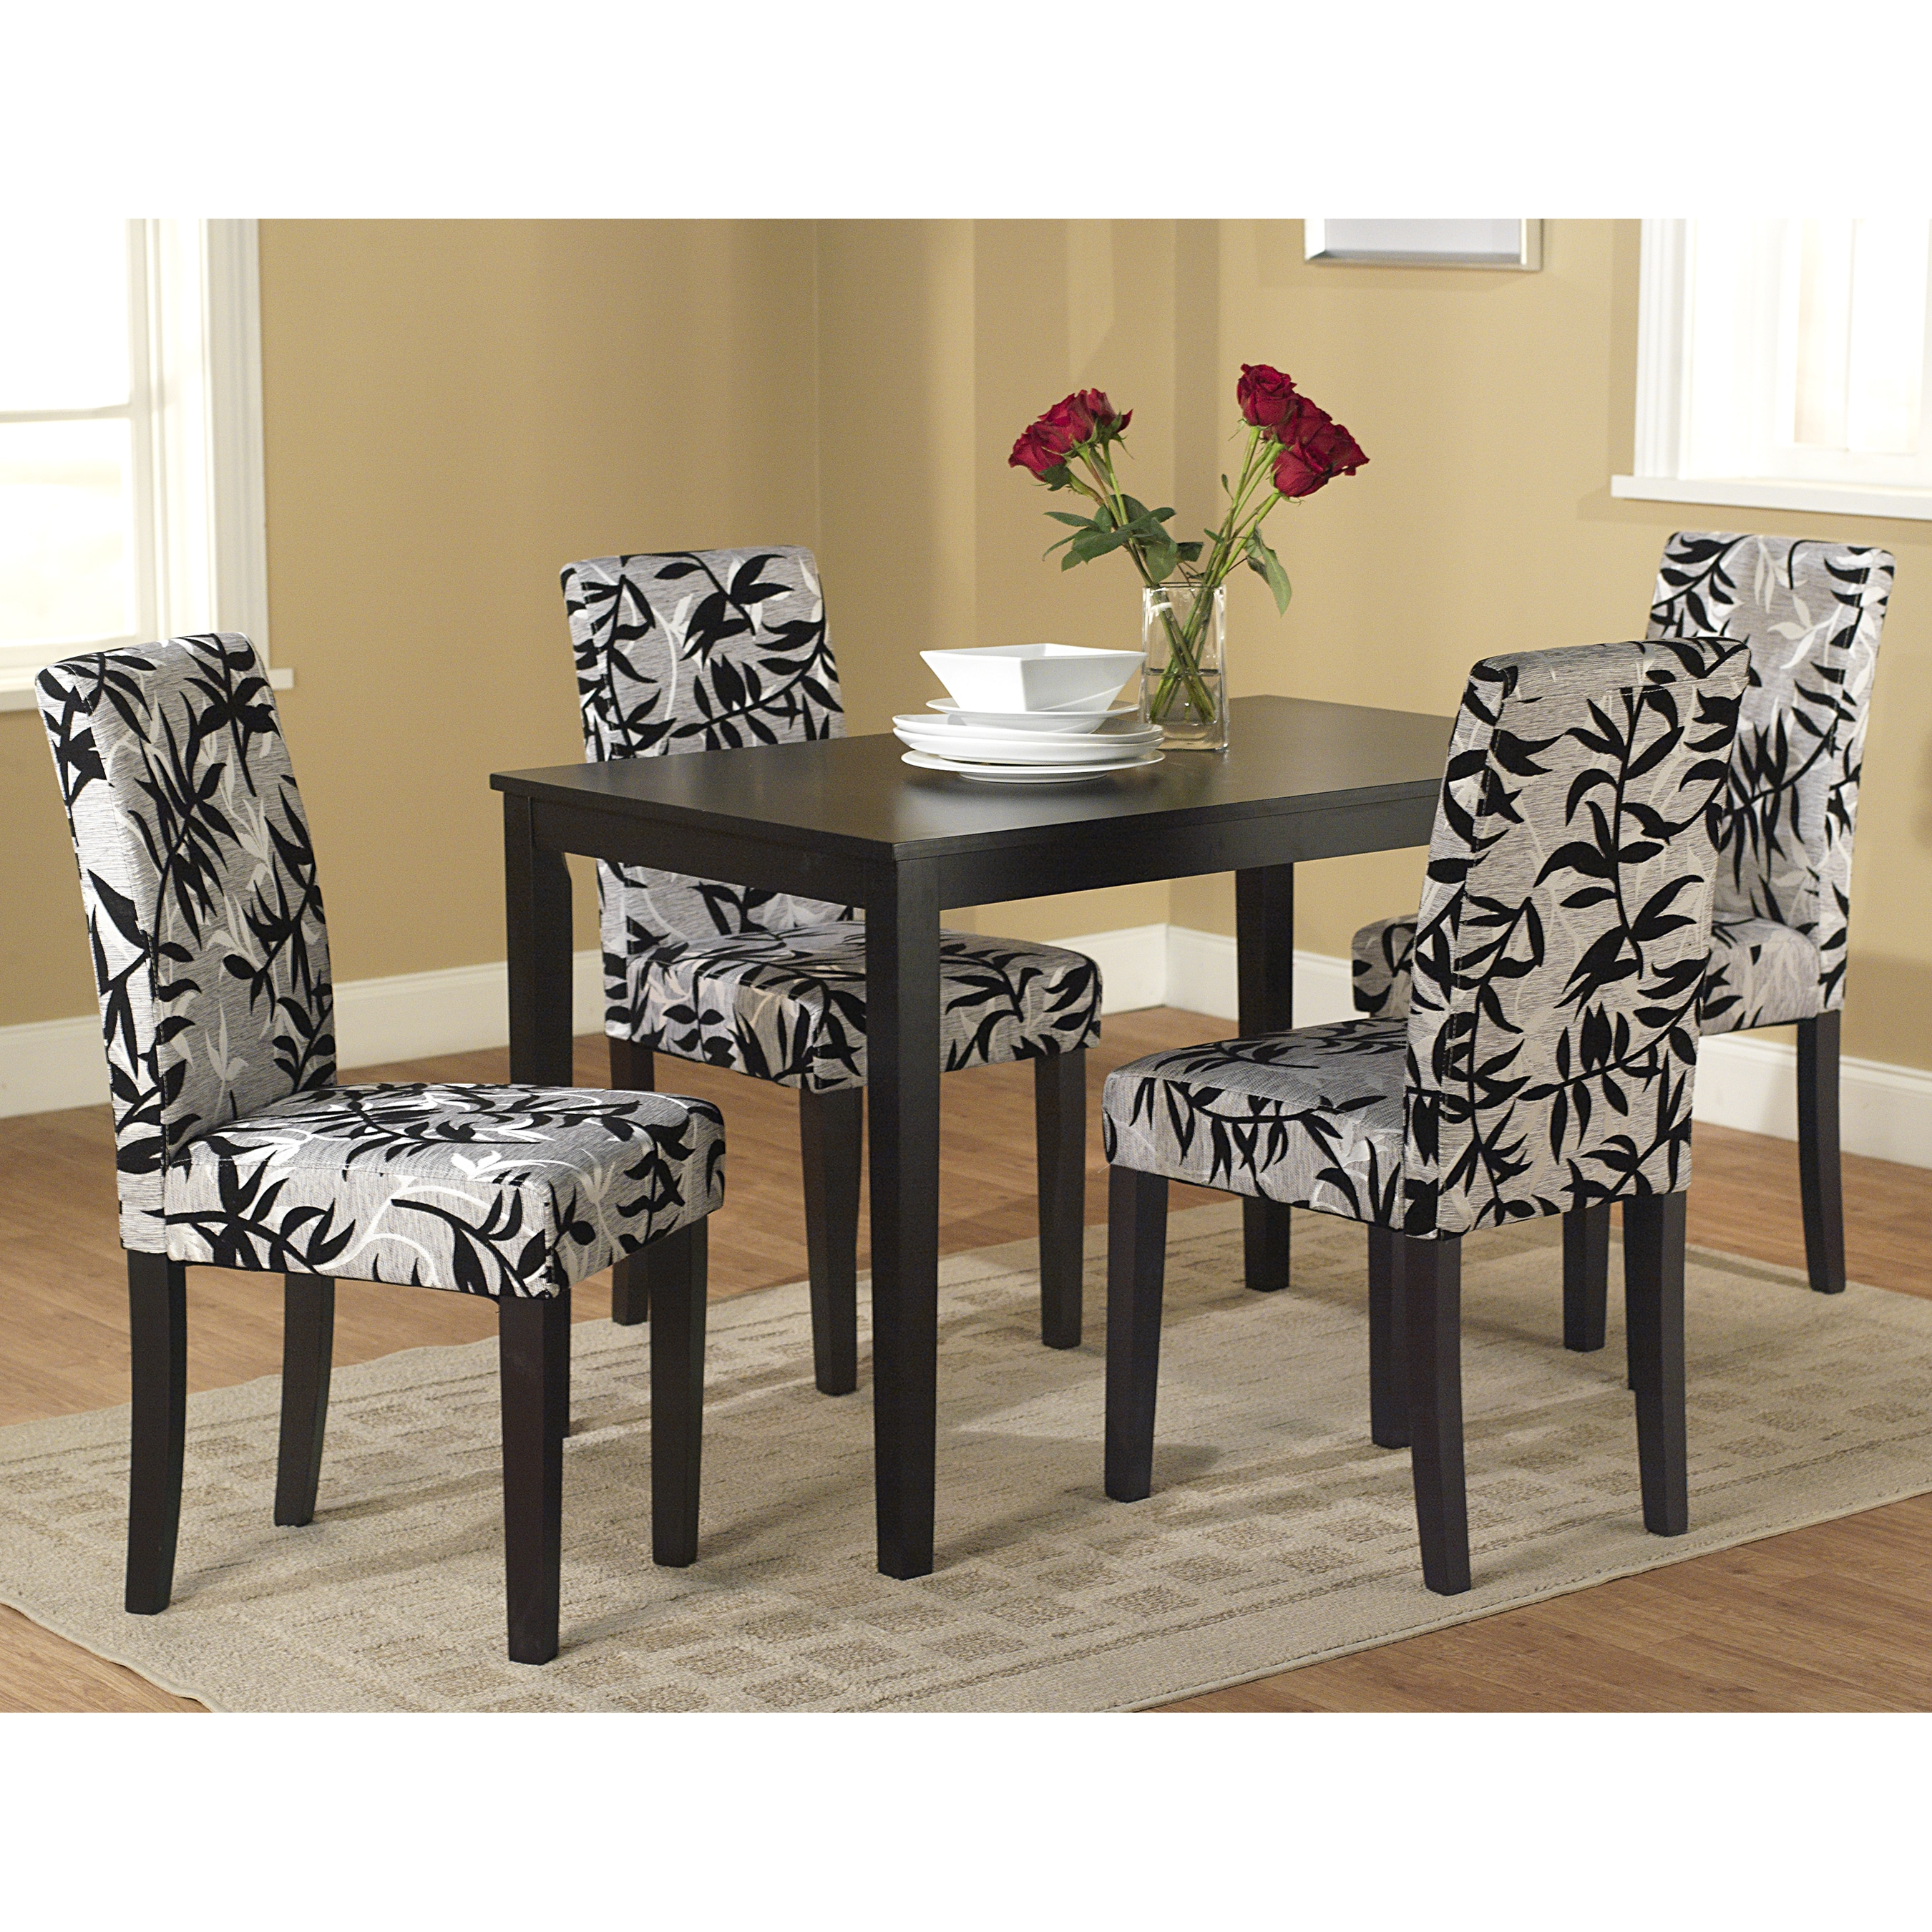 Simple Living Room Furniture Big: Simple Living Parson Black And Silver 5-Piece Dining Table